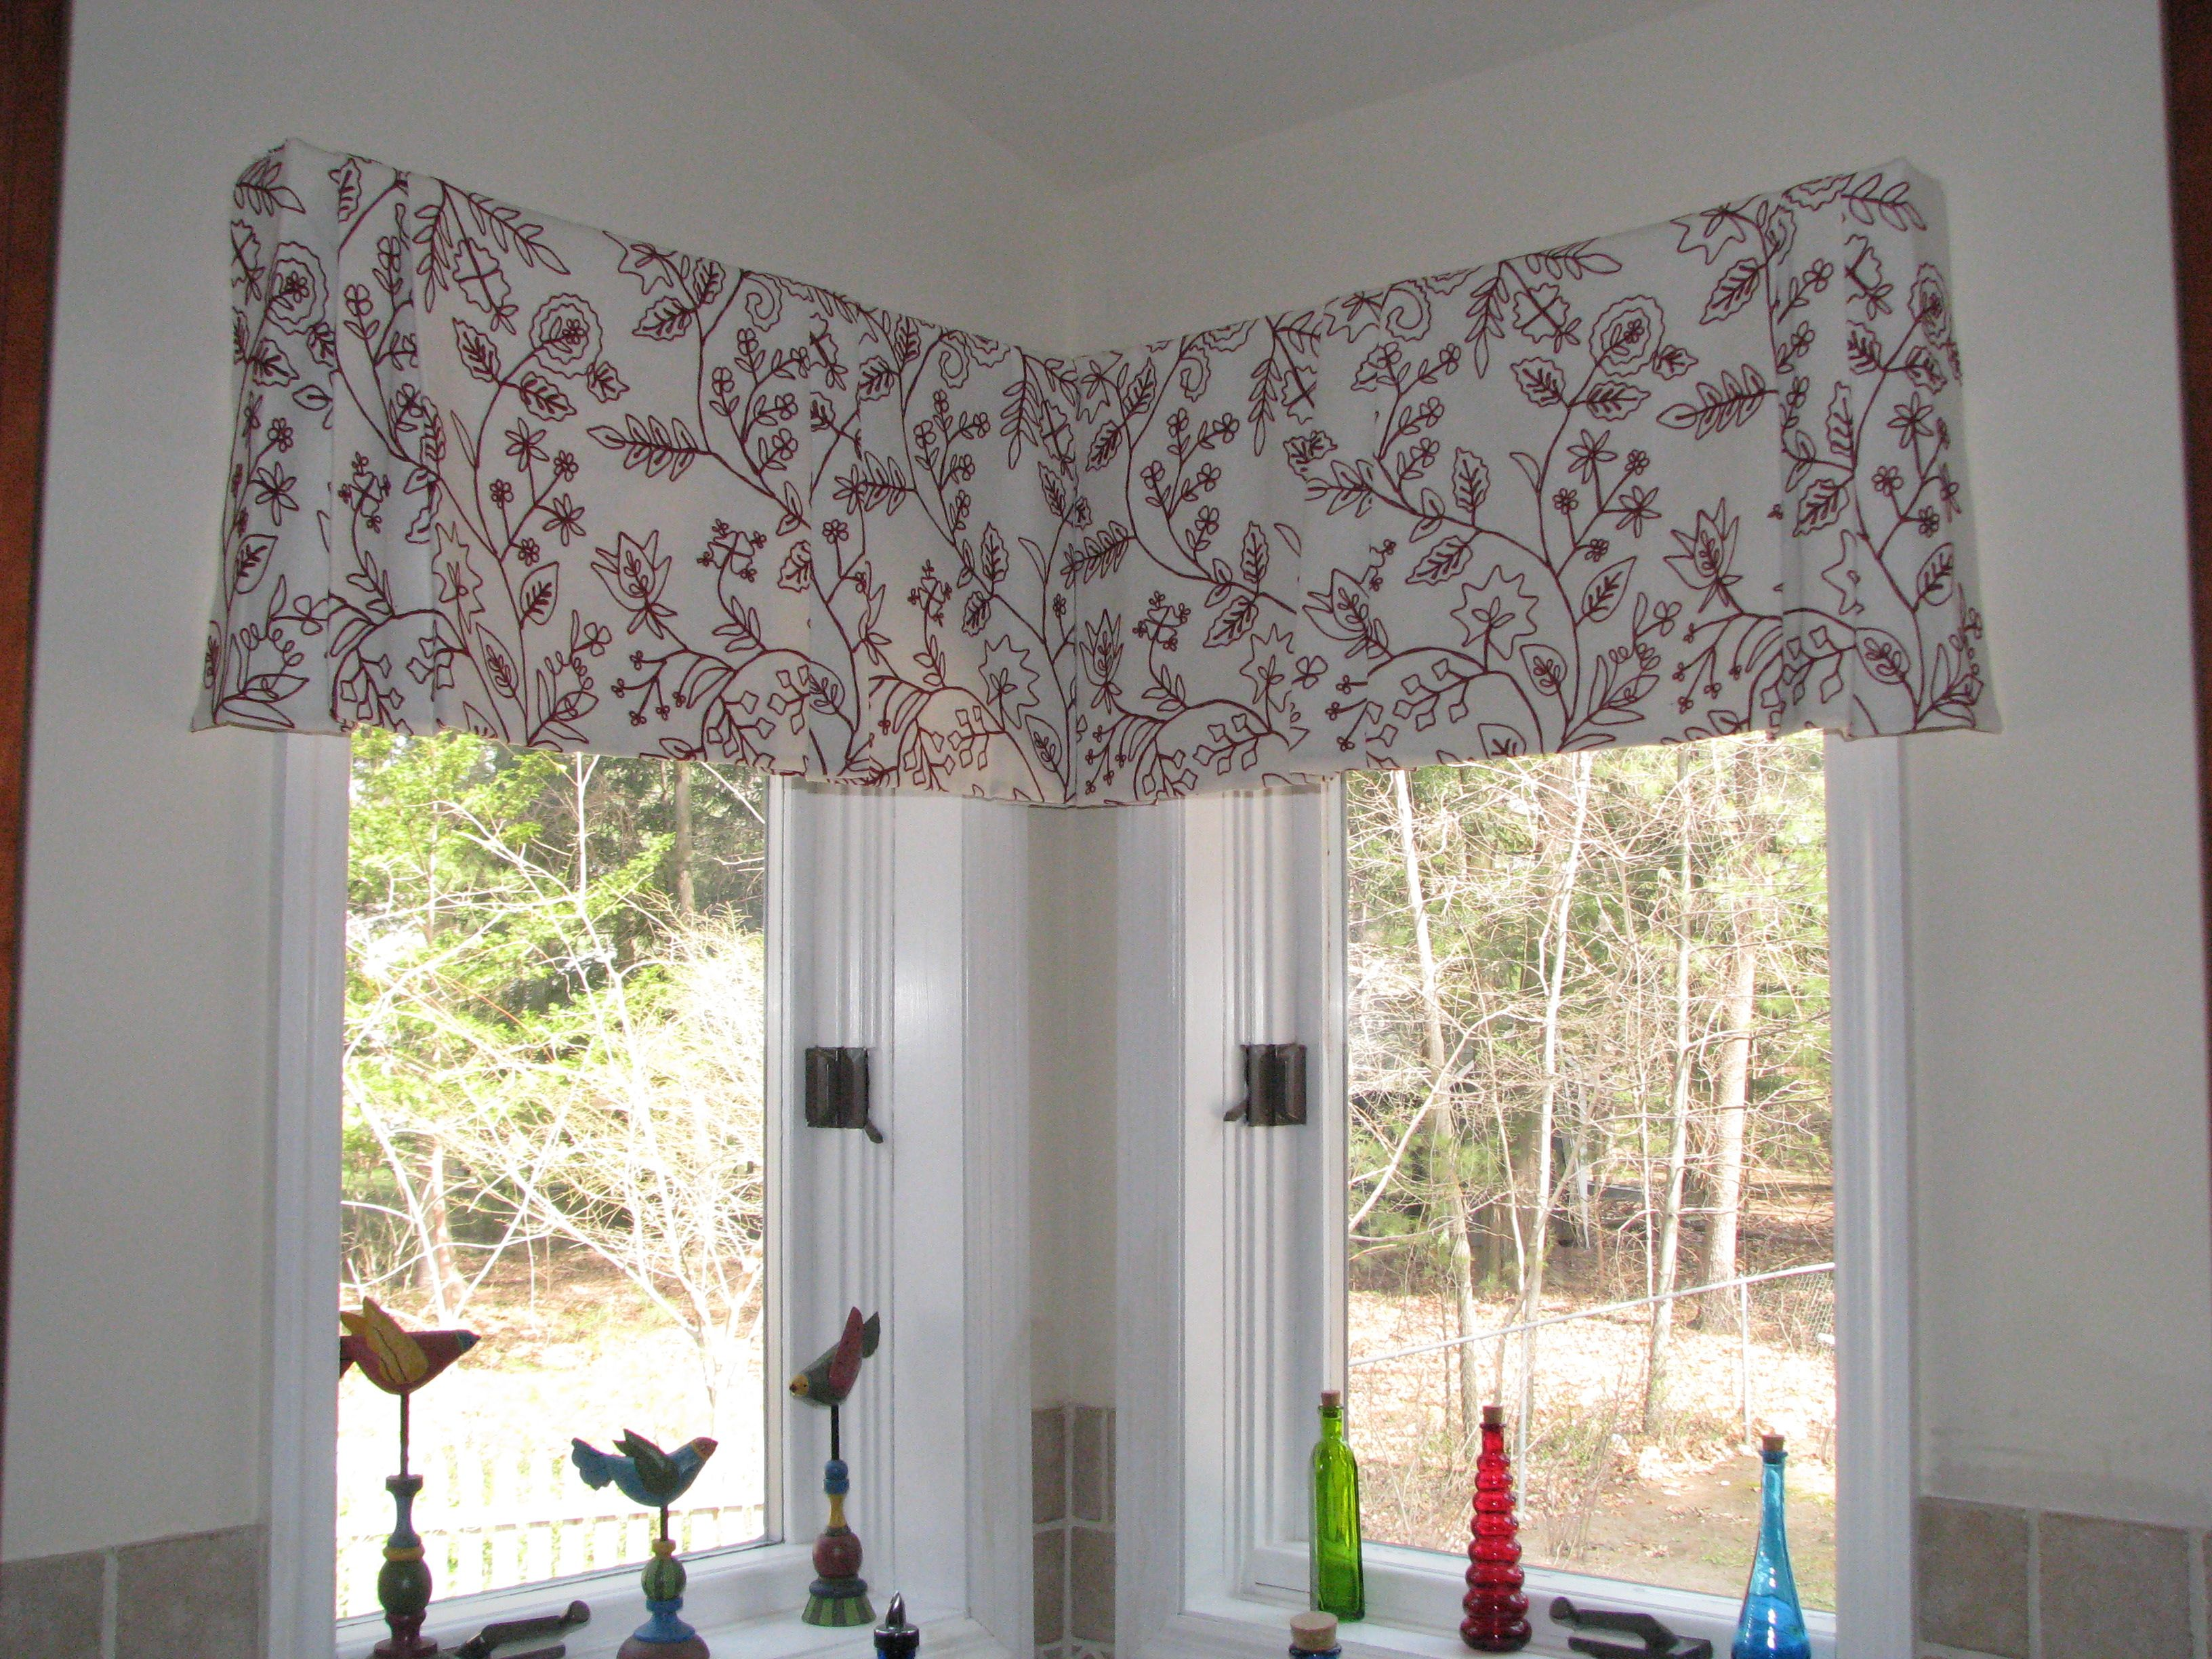 tailored pleated valance for corner window in embroidered linencotton blend fabric